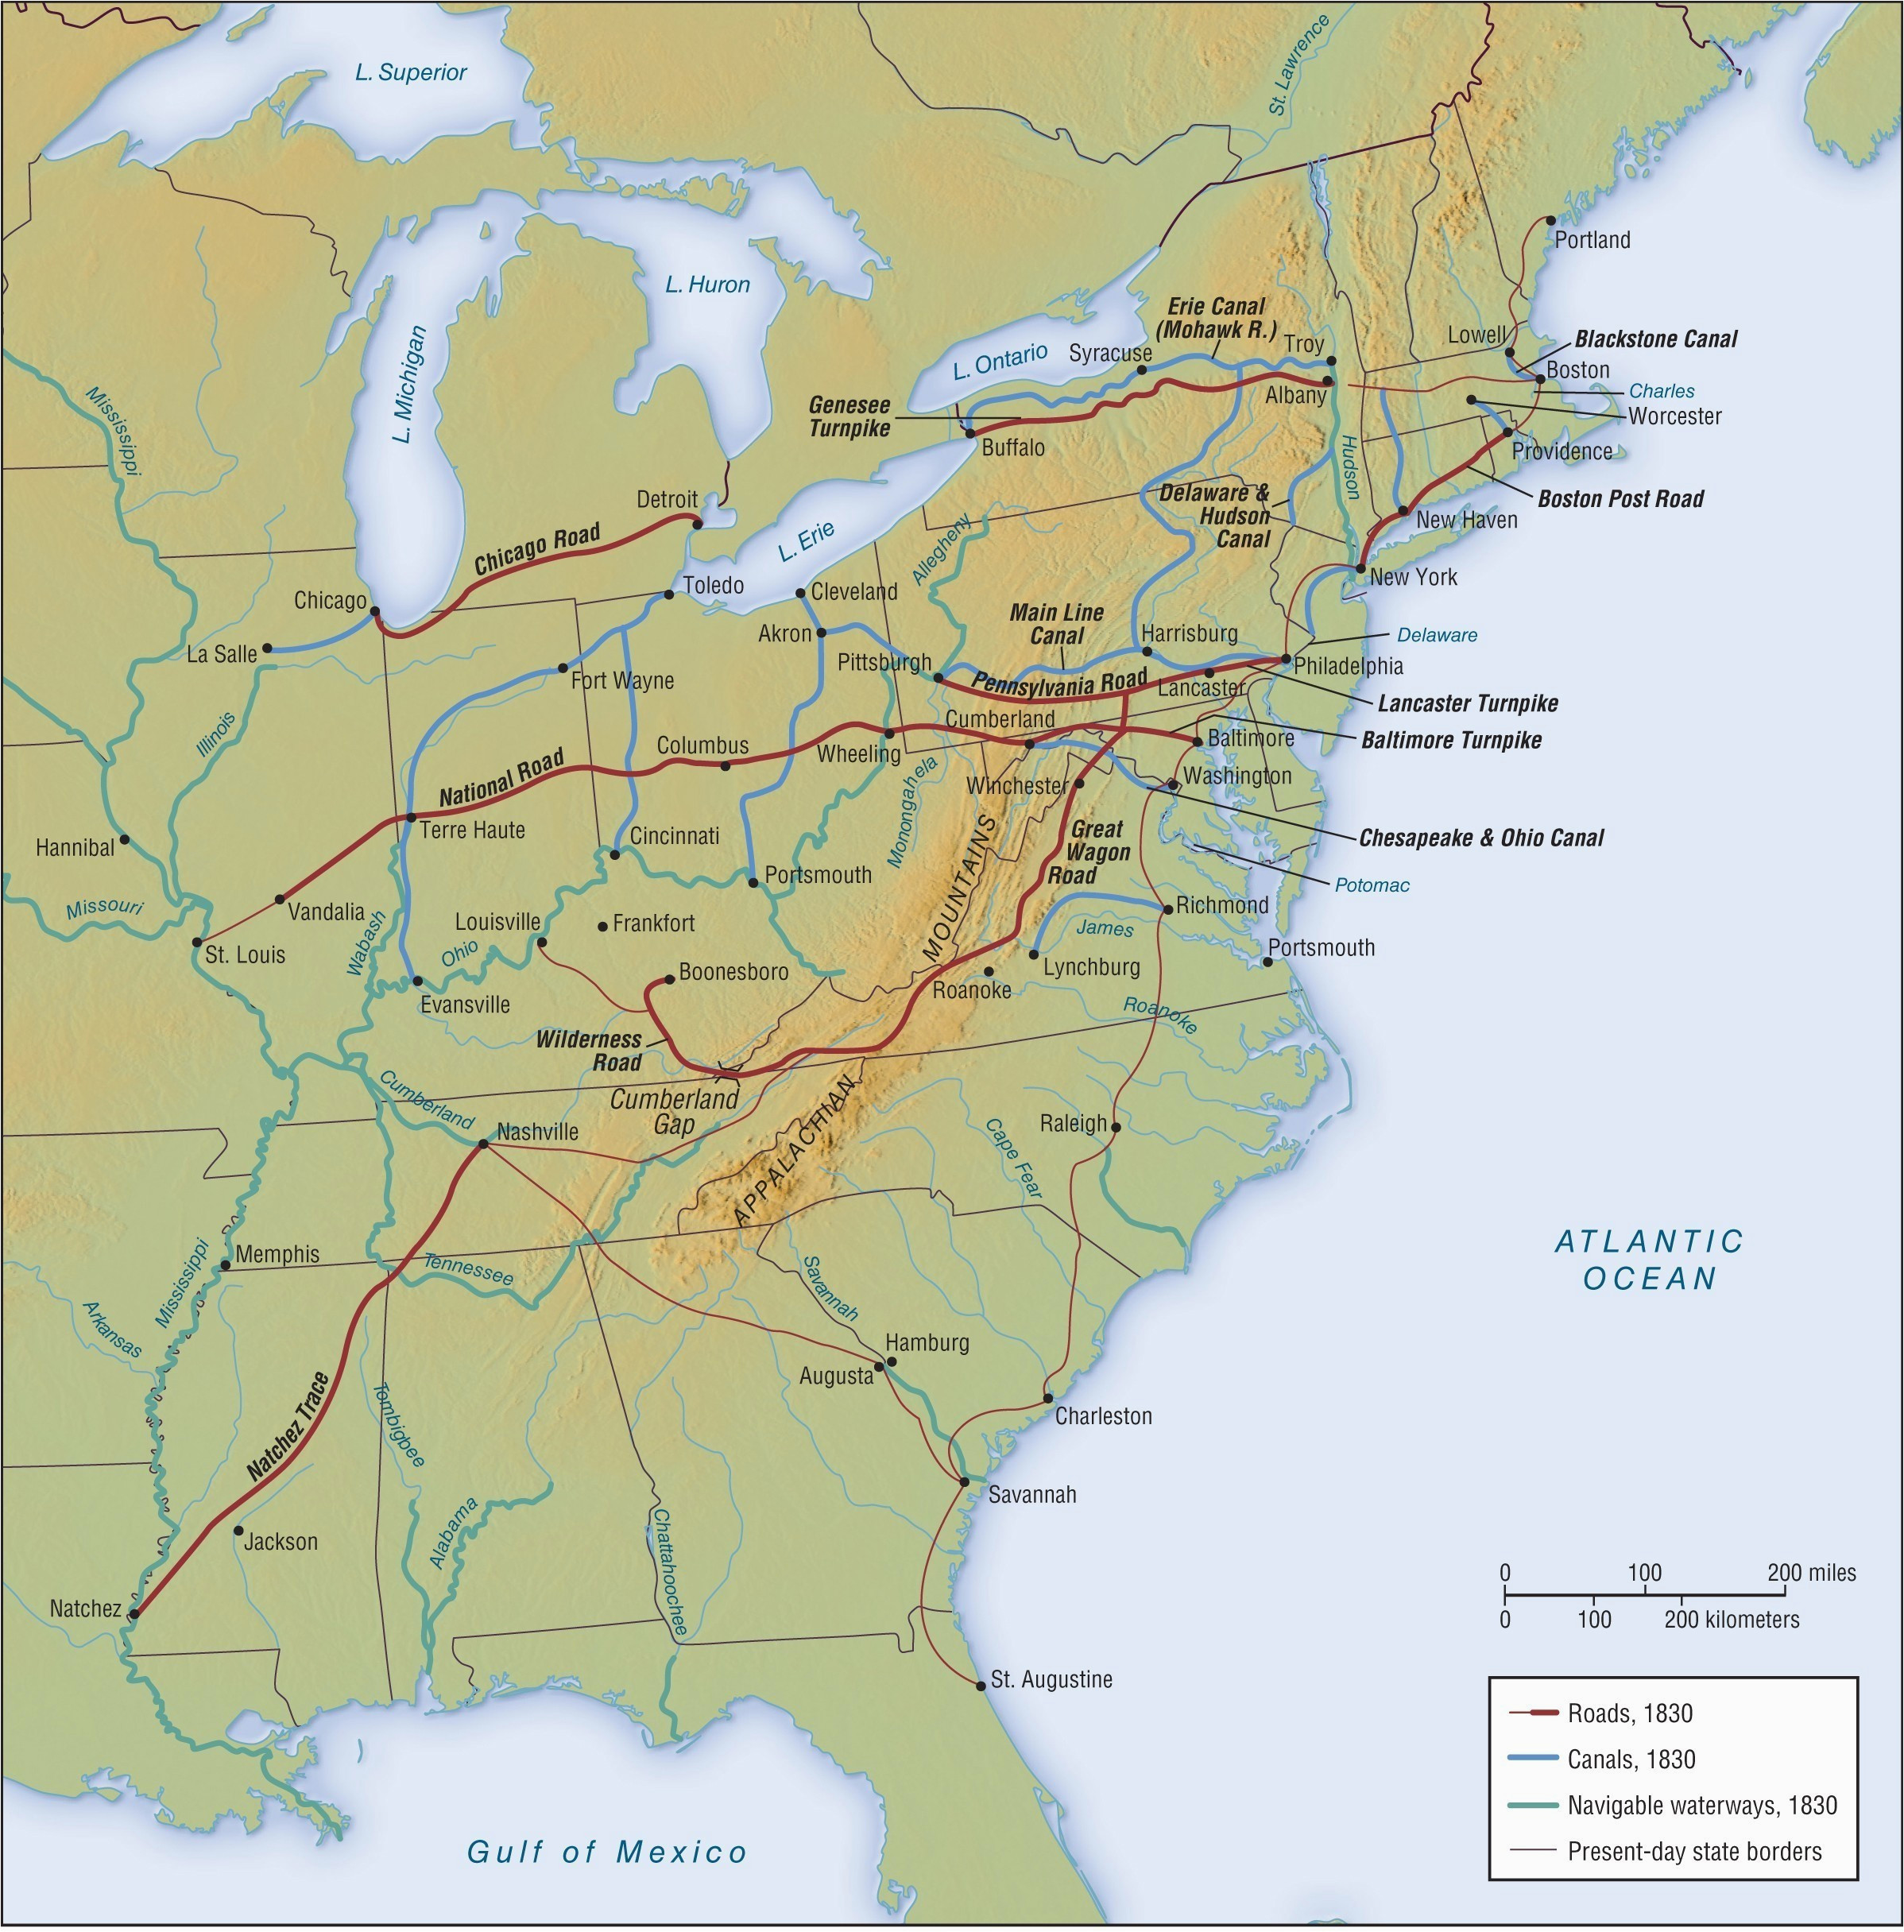 unique ohio and erie canal map of us appalachia clanrobot com